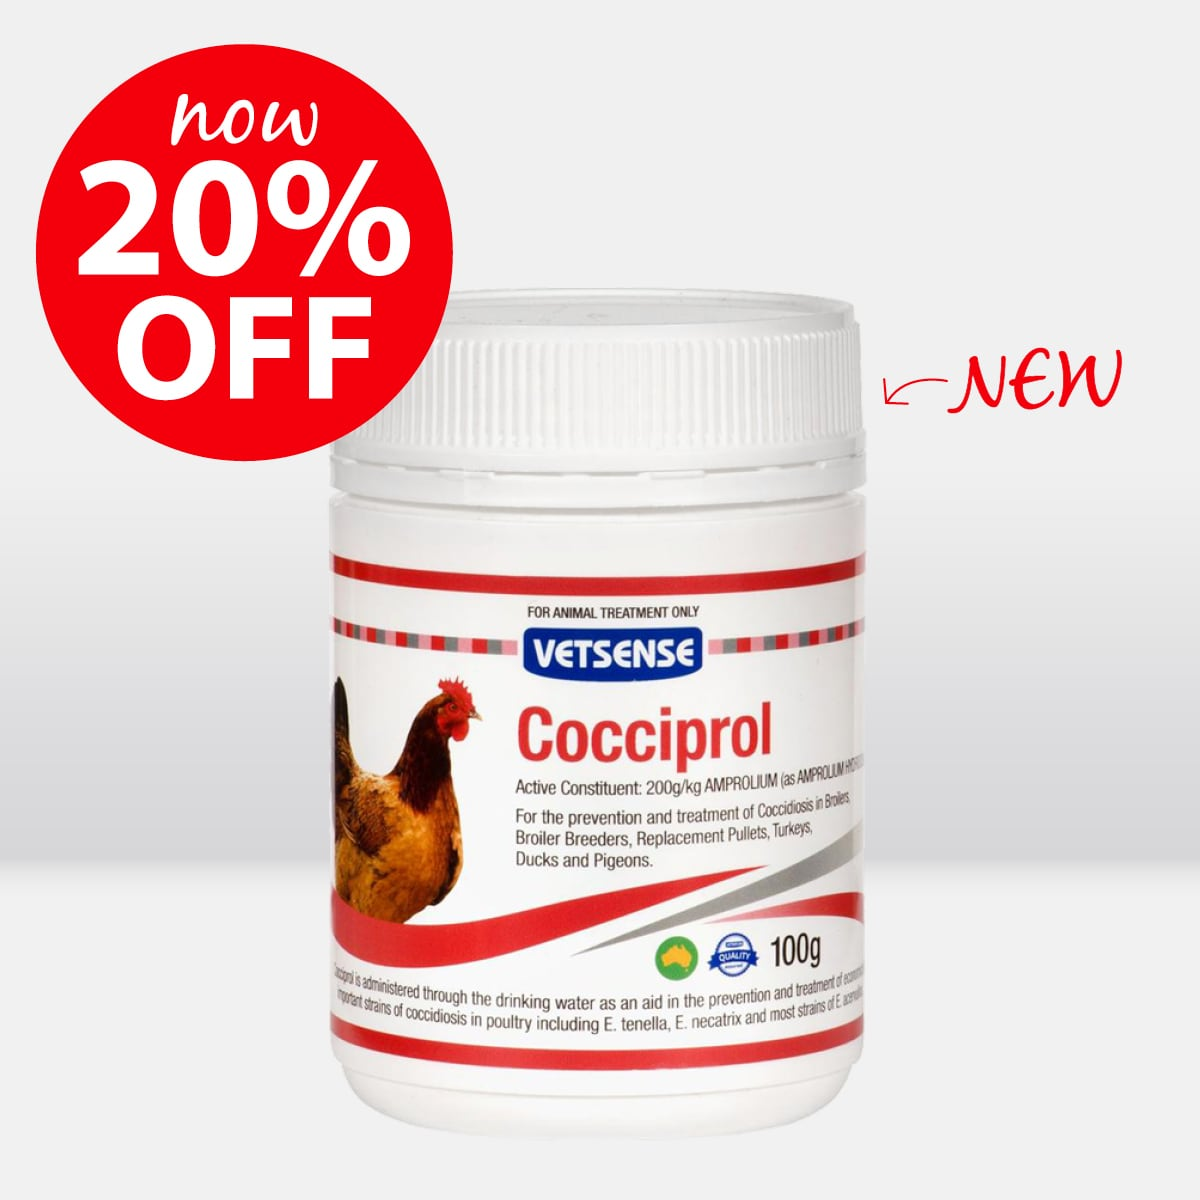 Cocciprol ON SALE